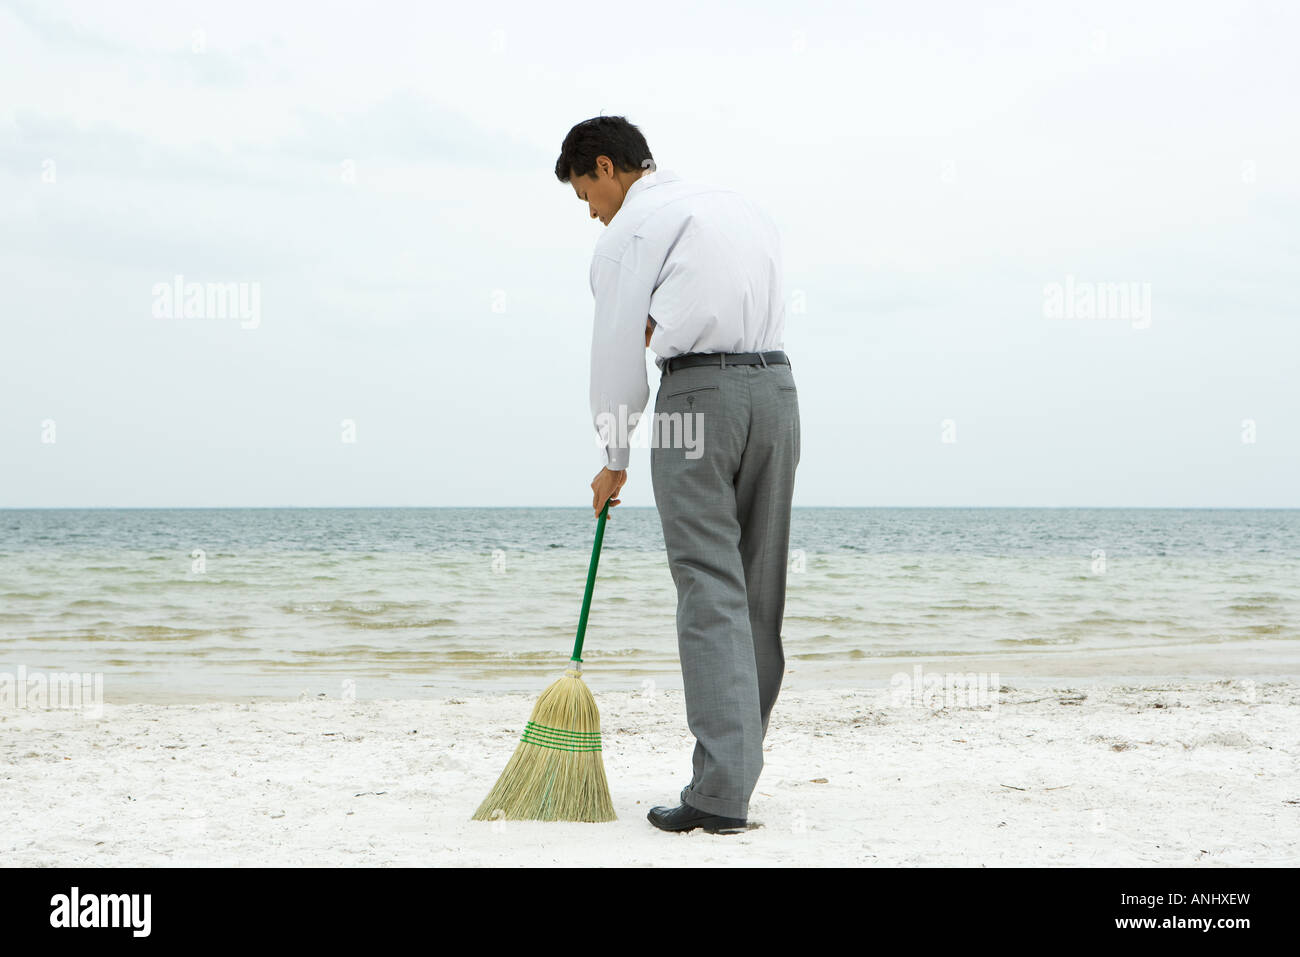 Man standing on beach sweeping with broom, rear view - Stock Image